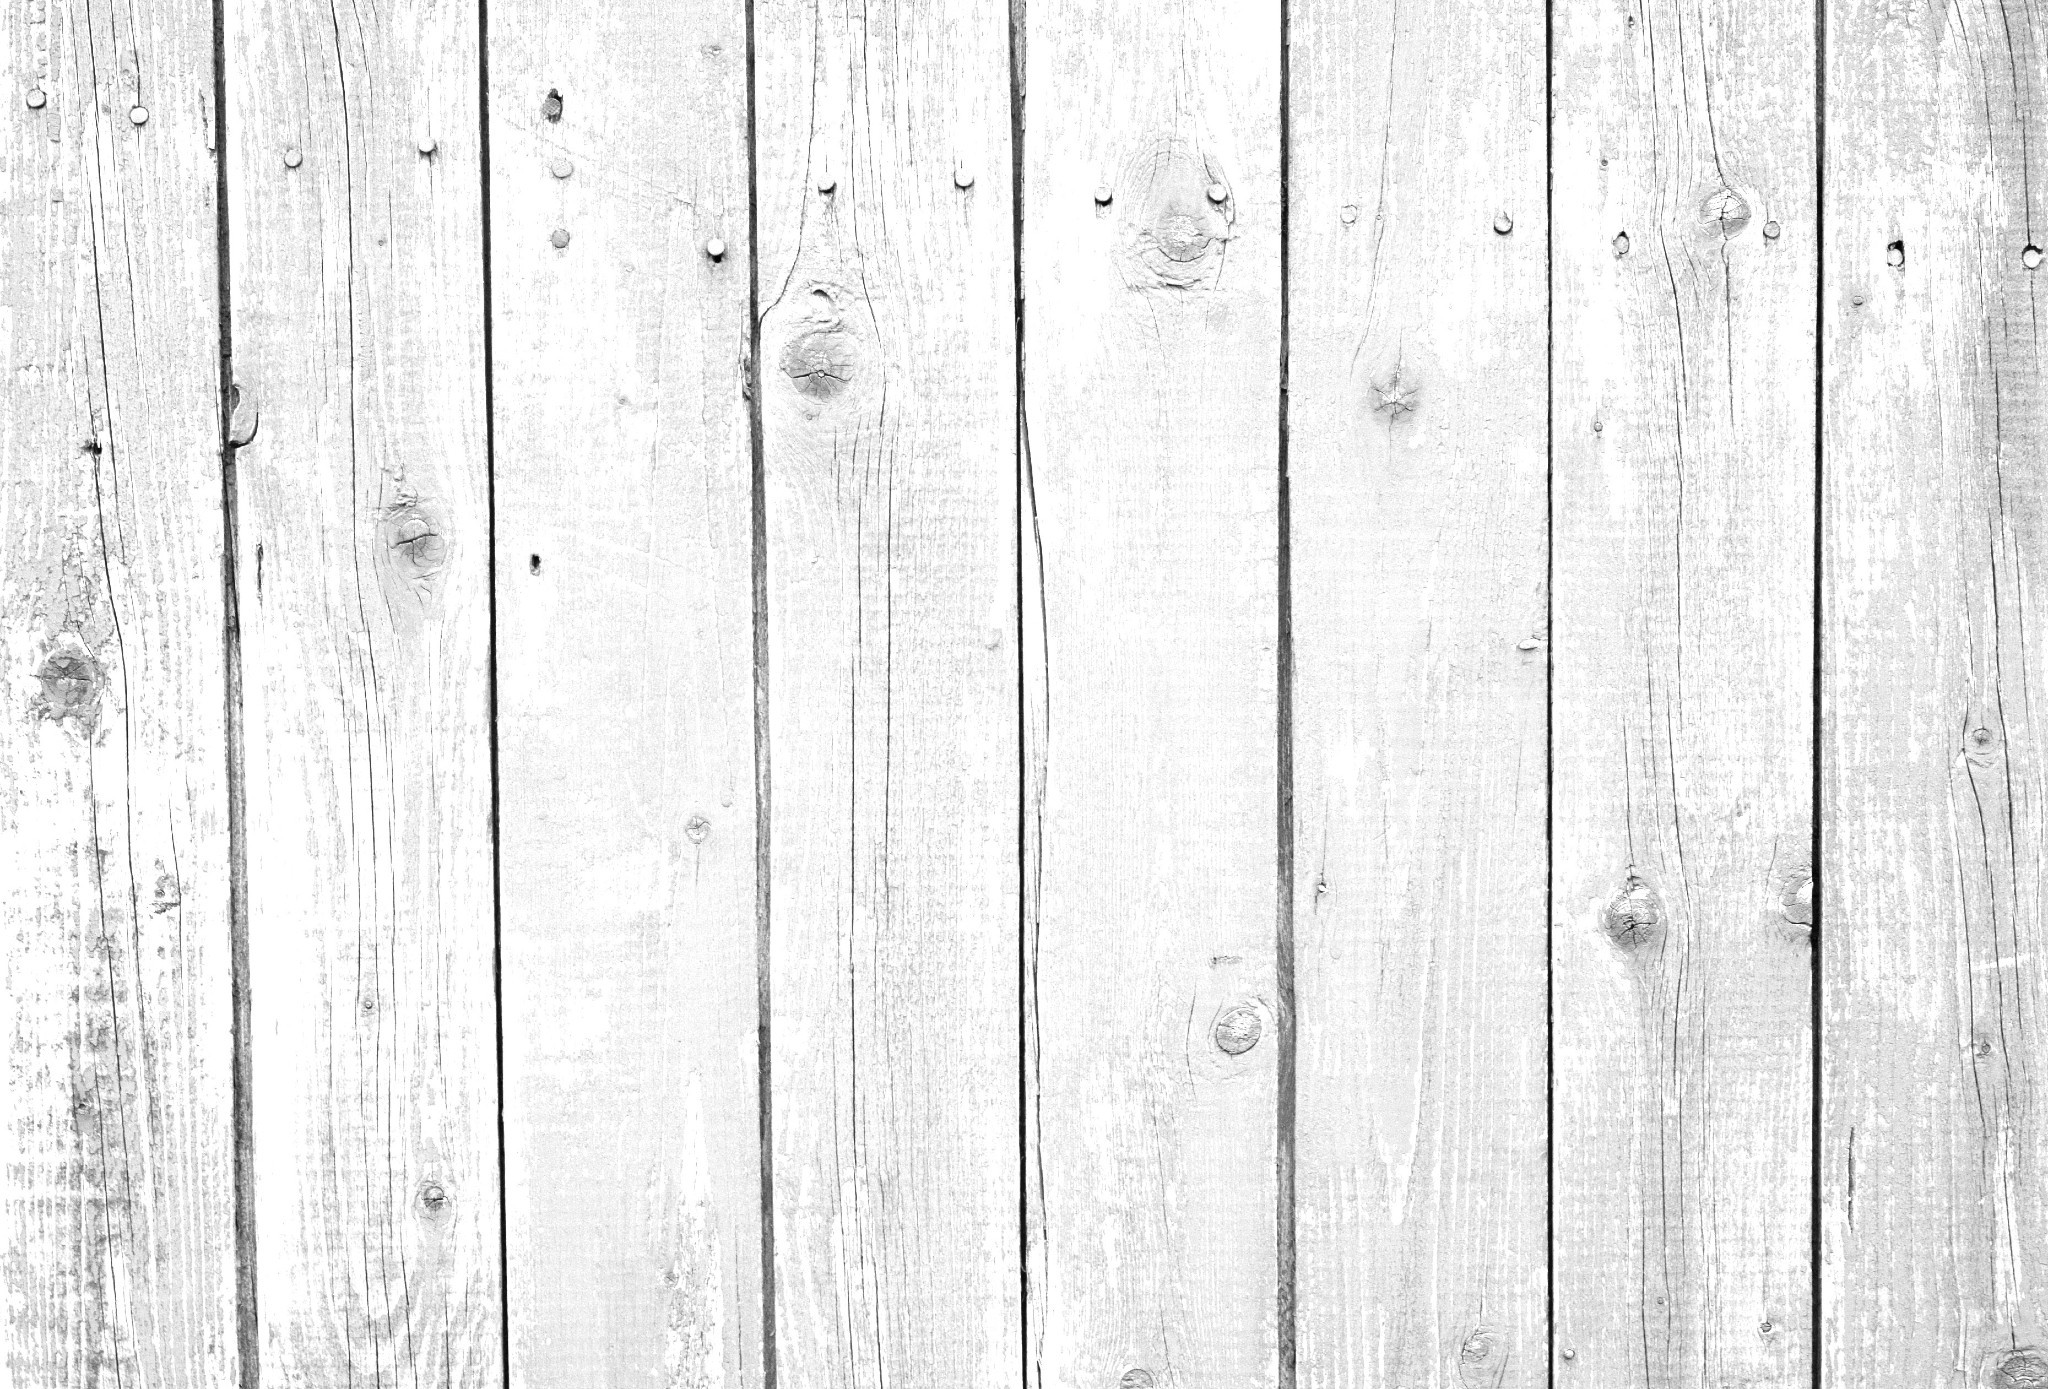 Rustic Country White Wood Background 183 ① Download Free Beautiful High